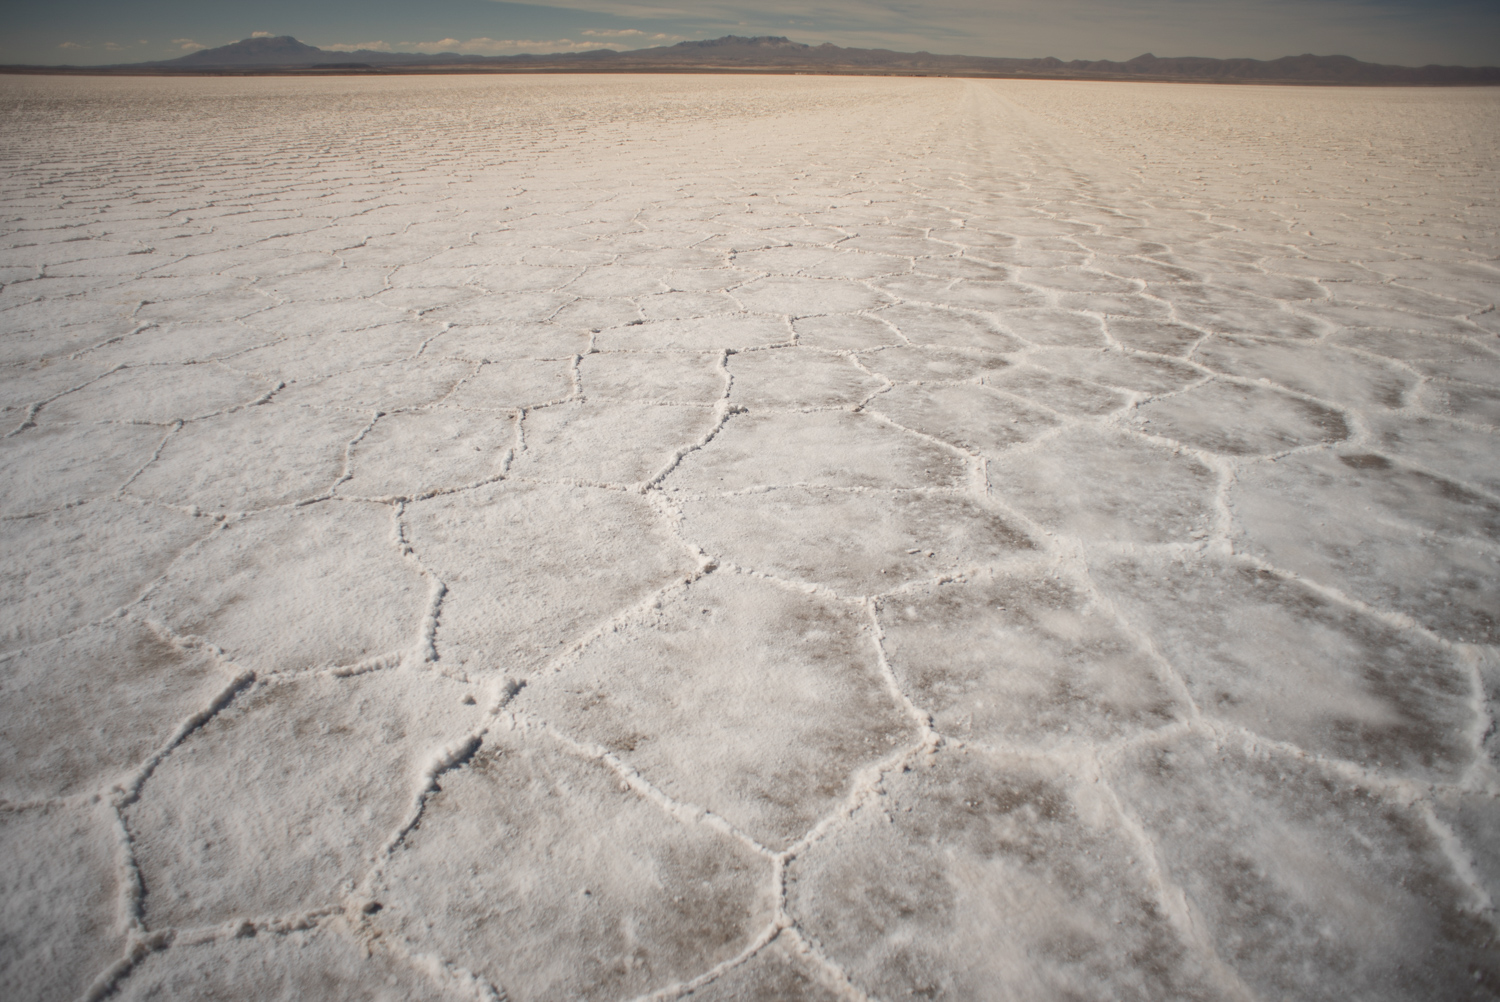 Mining is Bolivia's primary industry. An estimated 40 percent of all global lithium deposits, known as 'white gold', are located at Bolivia's famous Salar de Uyuni salt flats. [Yiannis Biliris/Al Jazeera]